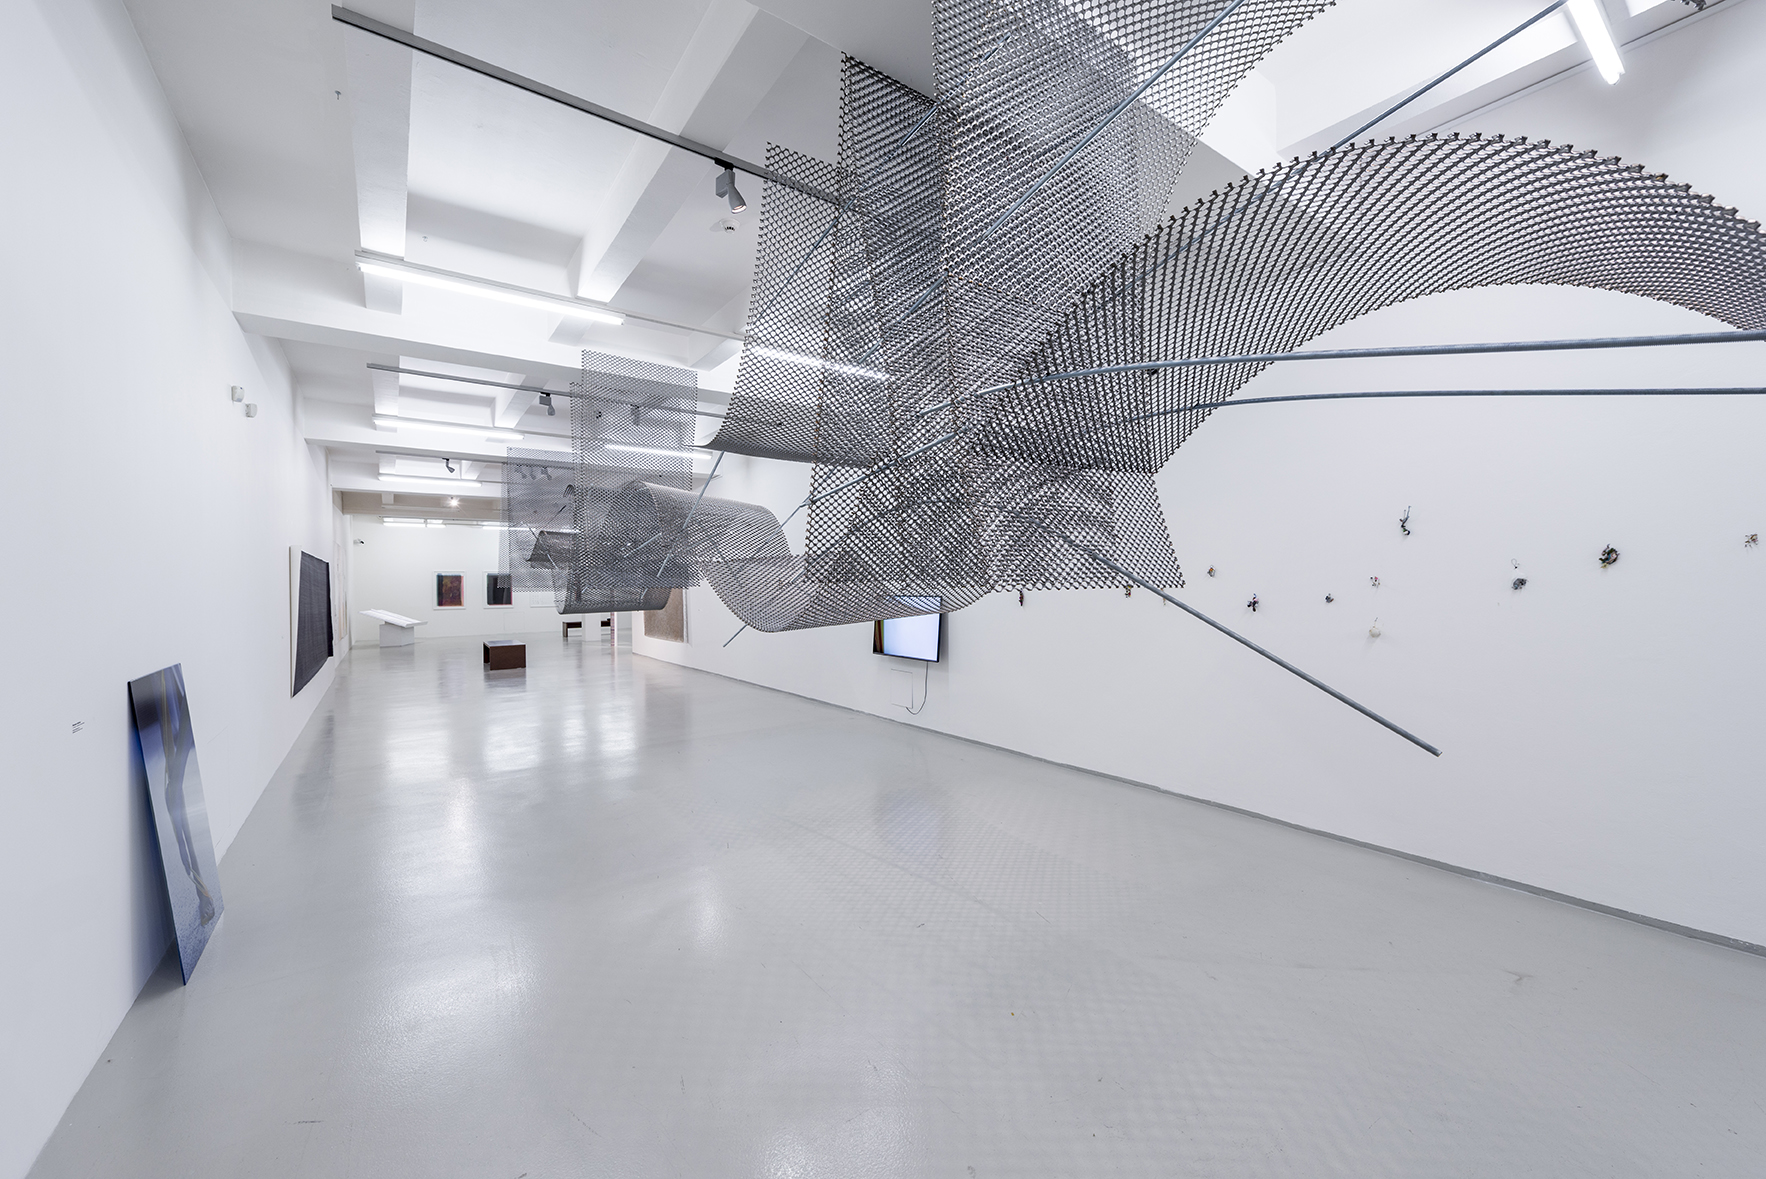 1 x 2m sheets of stainless steel expanded mesh and galvanised threaded poles. Overall dimensions 1 x 2 x 15m. DOX Gallery Prague.